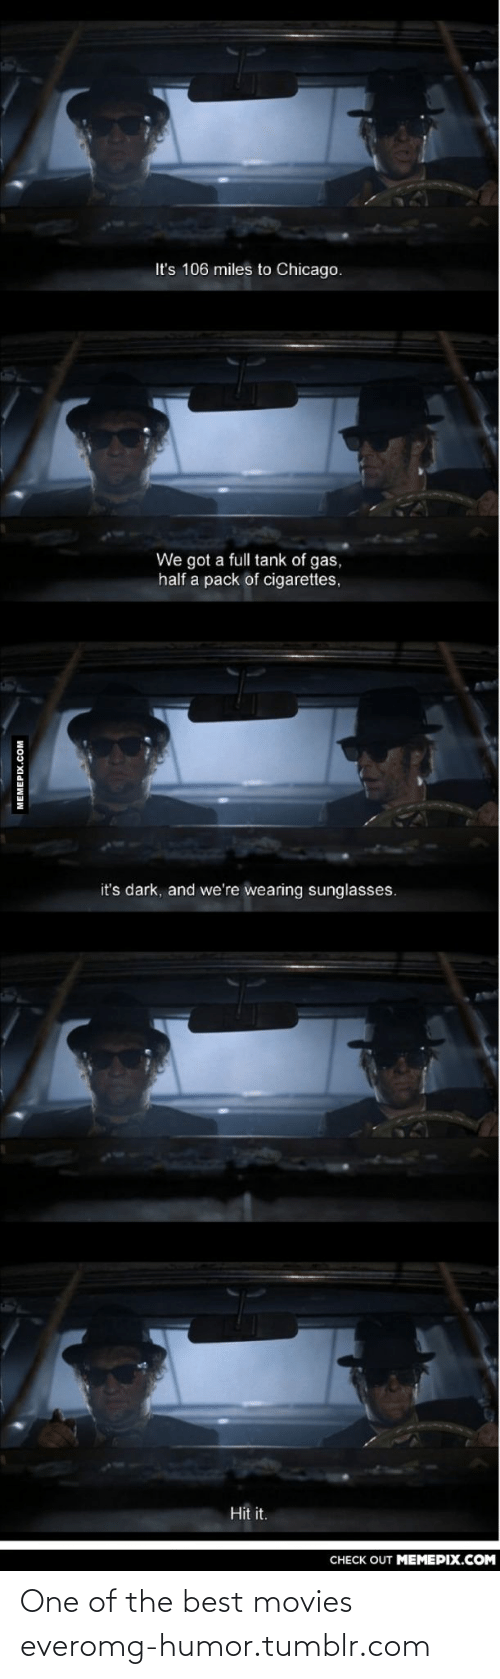 pack of cigarettes: It's 106 miles to Chicago.  We got a full tank of gas,  half a pack of cigarettes,  it's dark, and we're wearing sunglasses.  Hit it.  CHECK OUT MEMEPIX.COM  MEMEPIX.COM One of the best movies everomg-humor.tumblr.com